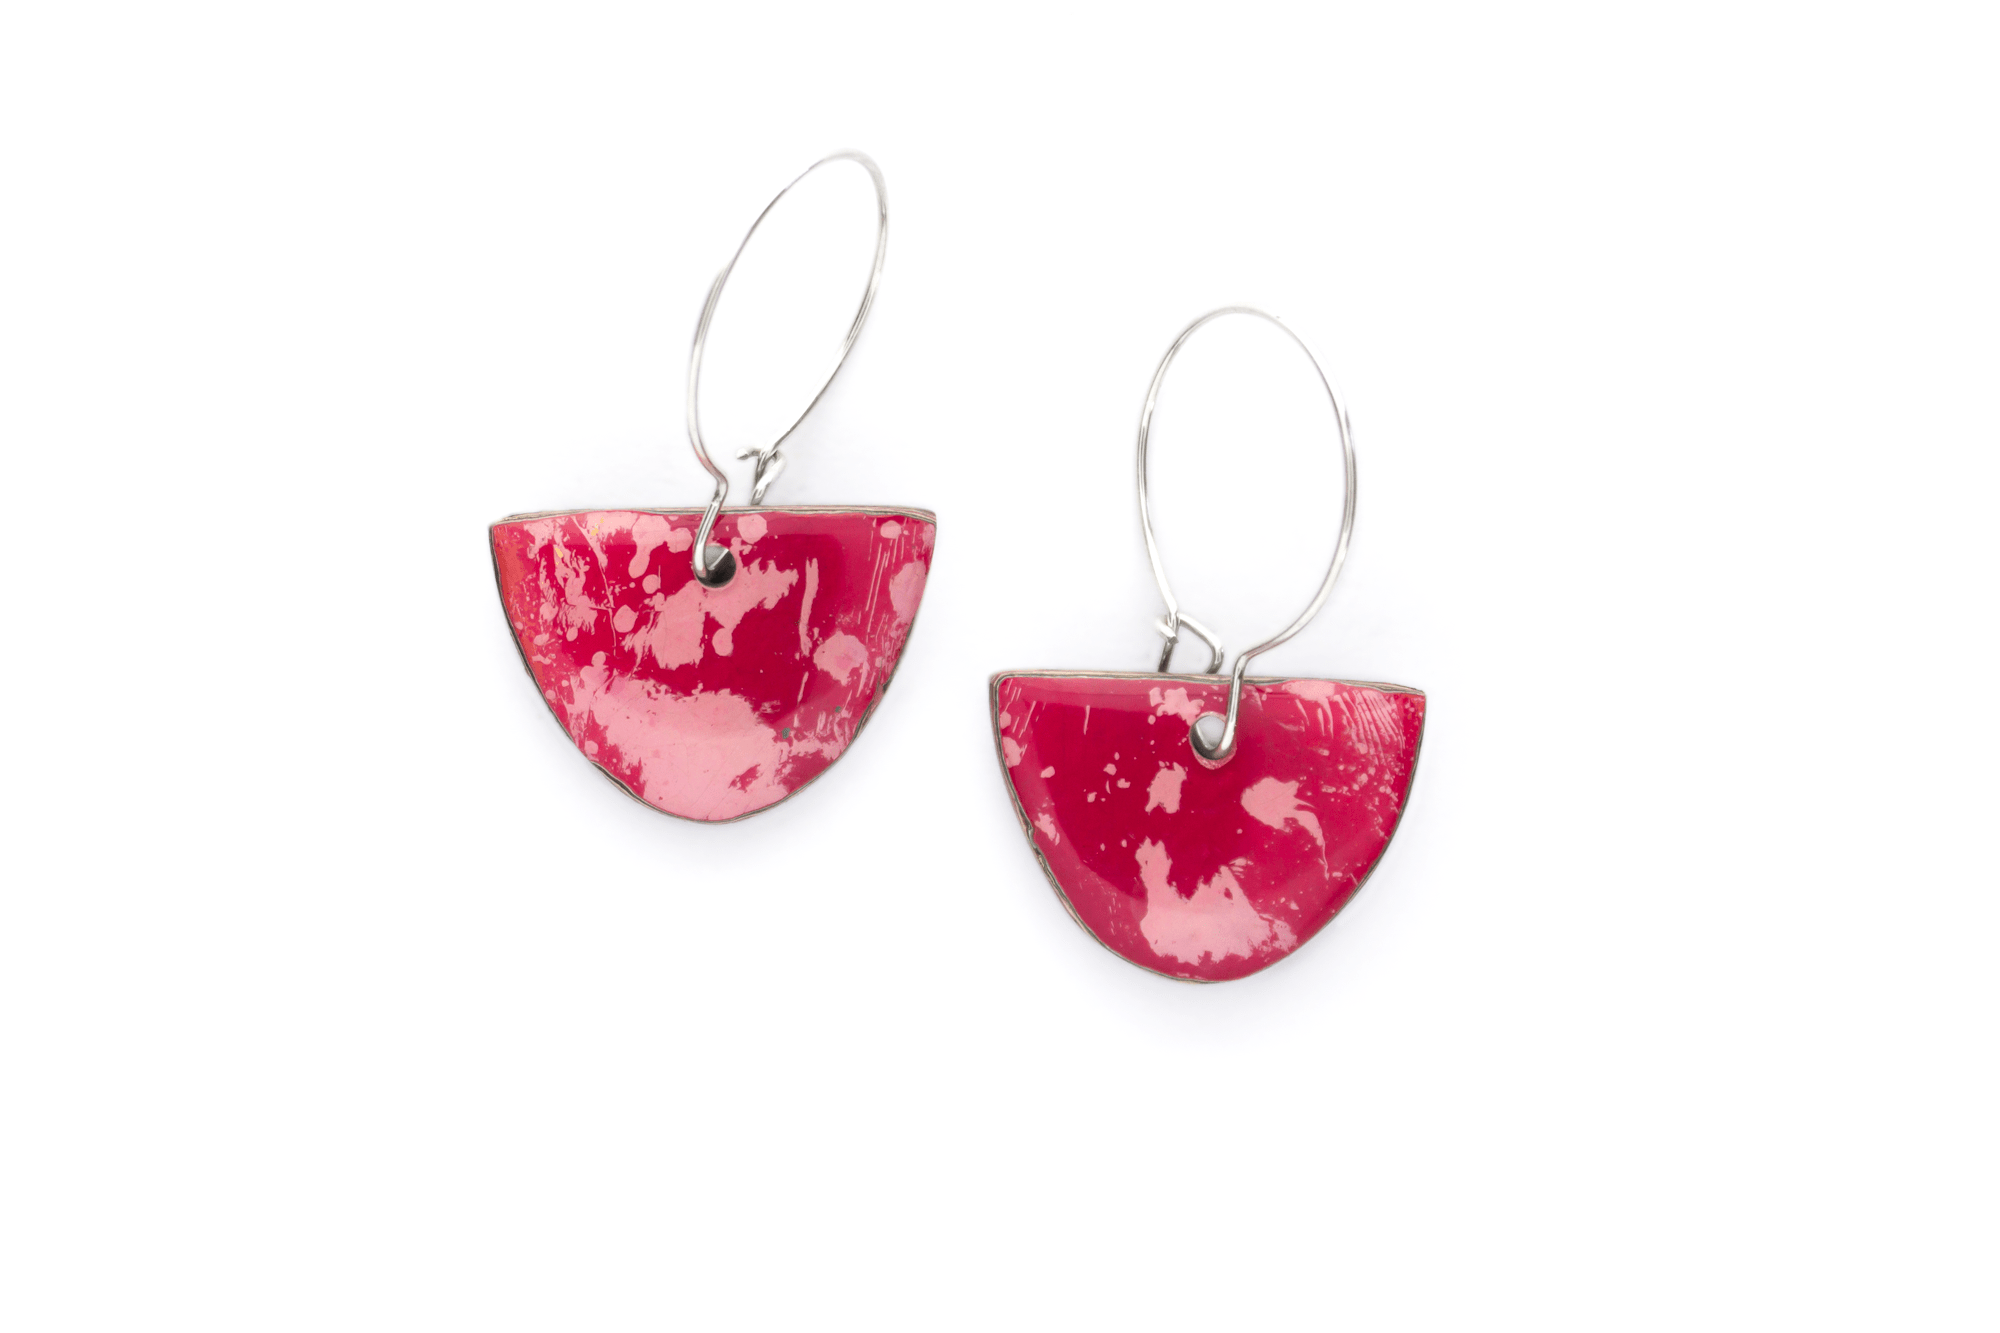 Unique, double-sided graffiti earrings